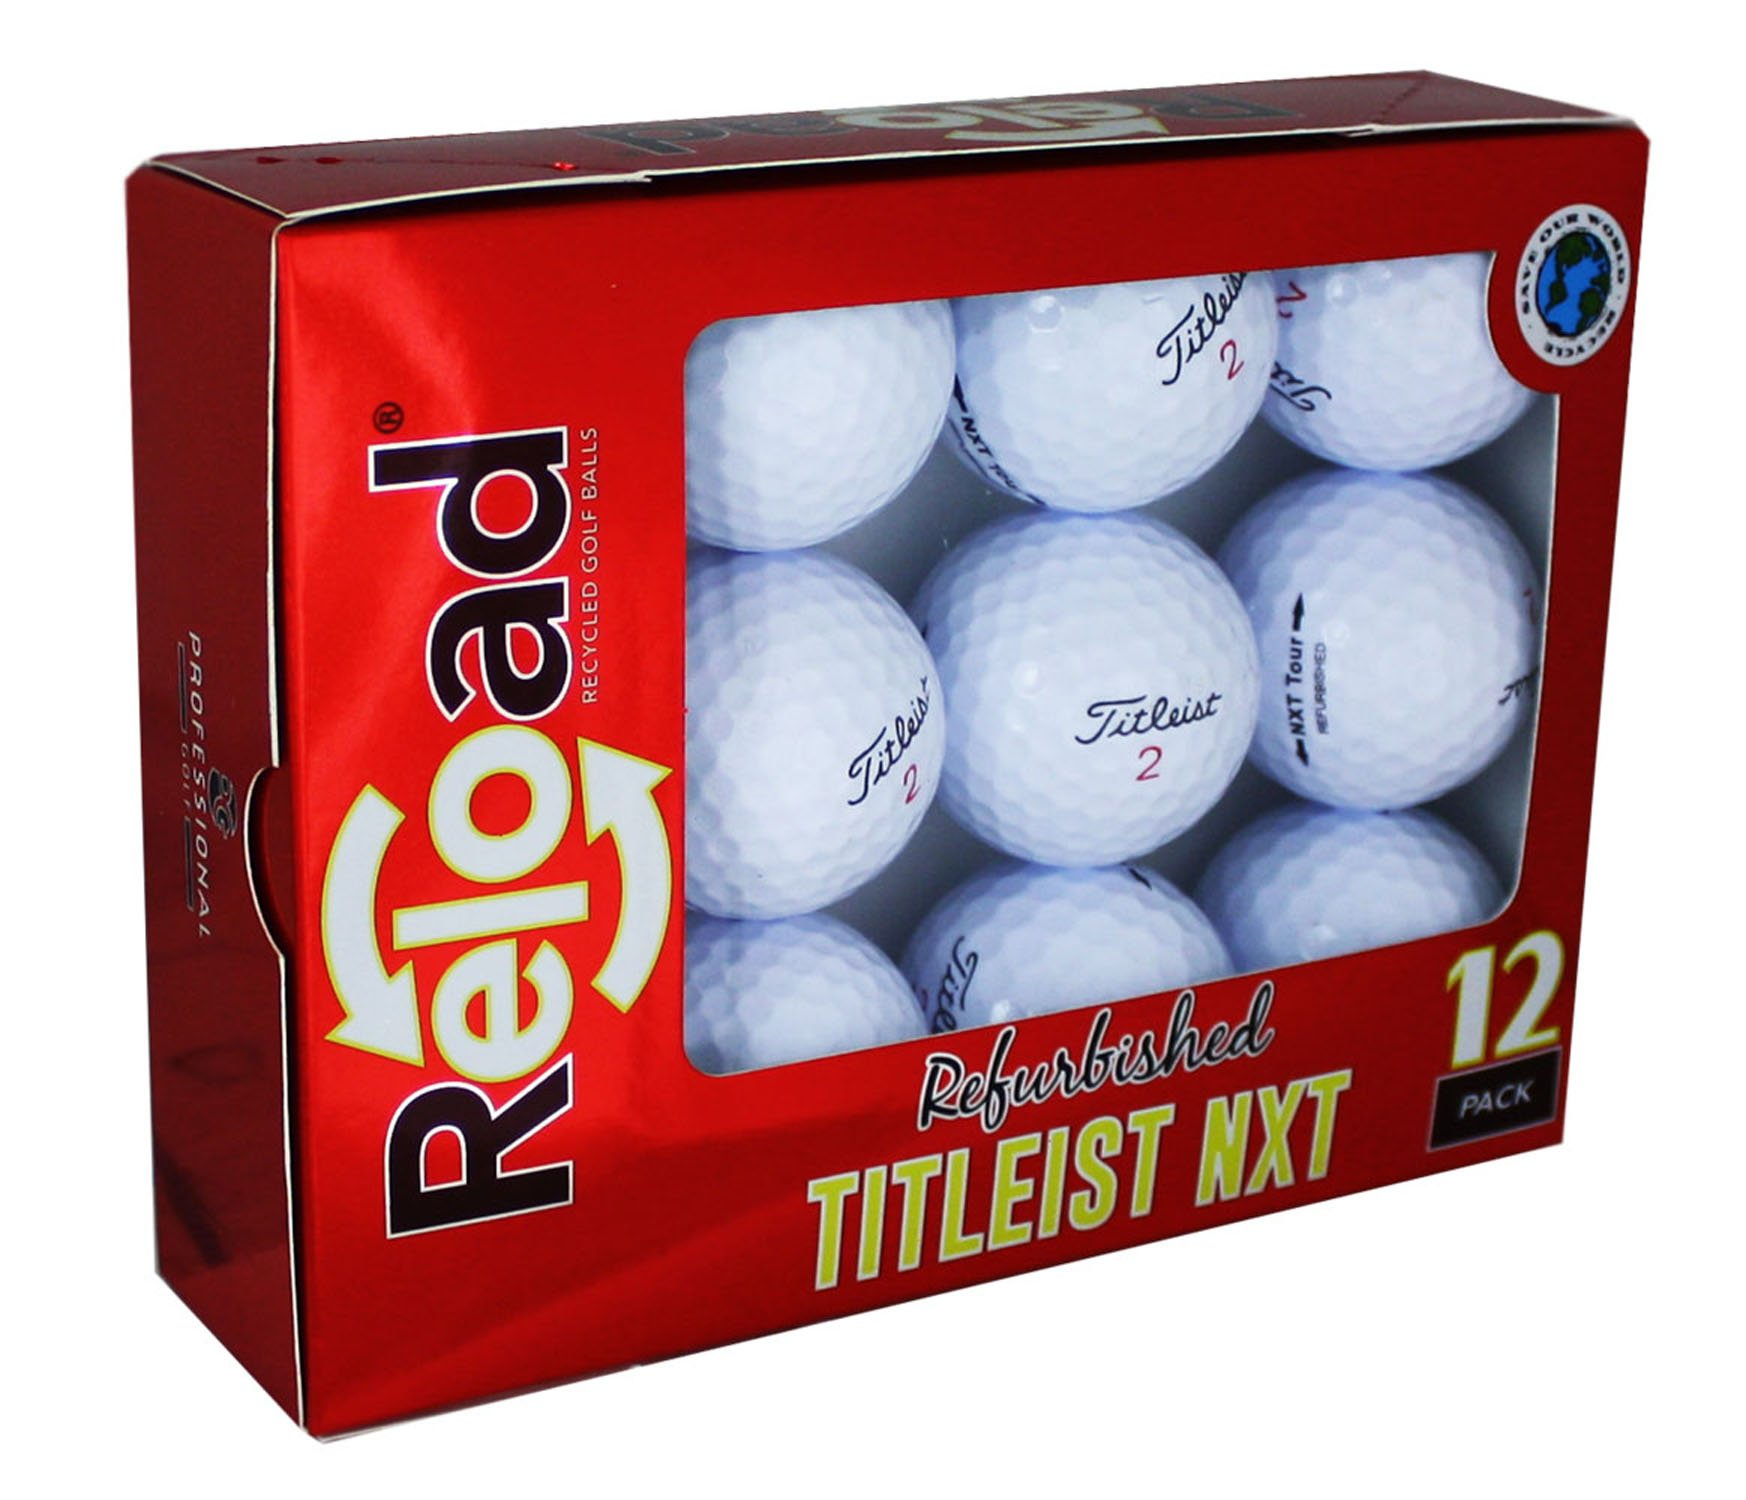 Titleist NXT Tour Refinished Golf Balls (One Dozen) Packaging May Vary by Titleist (Image #1)